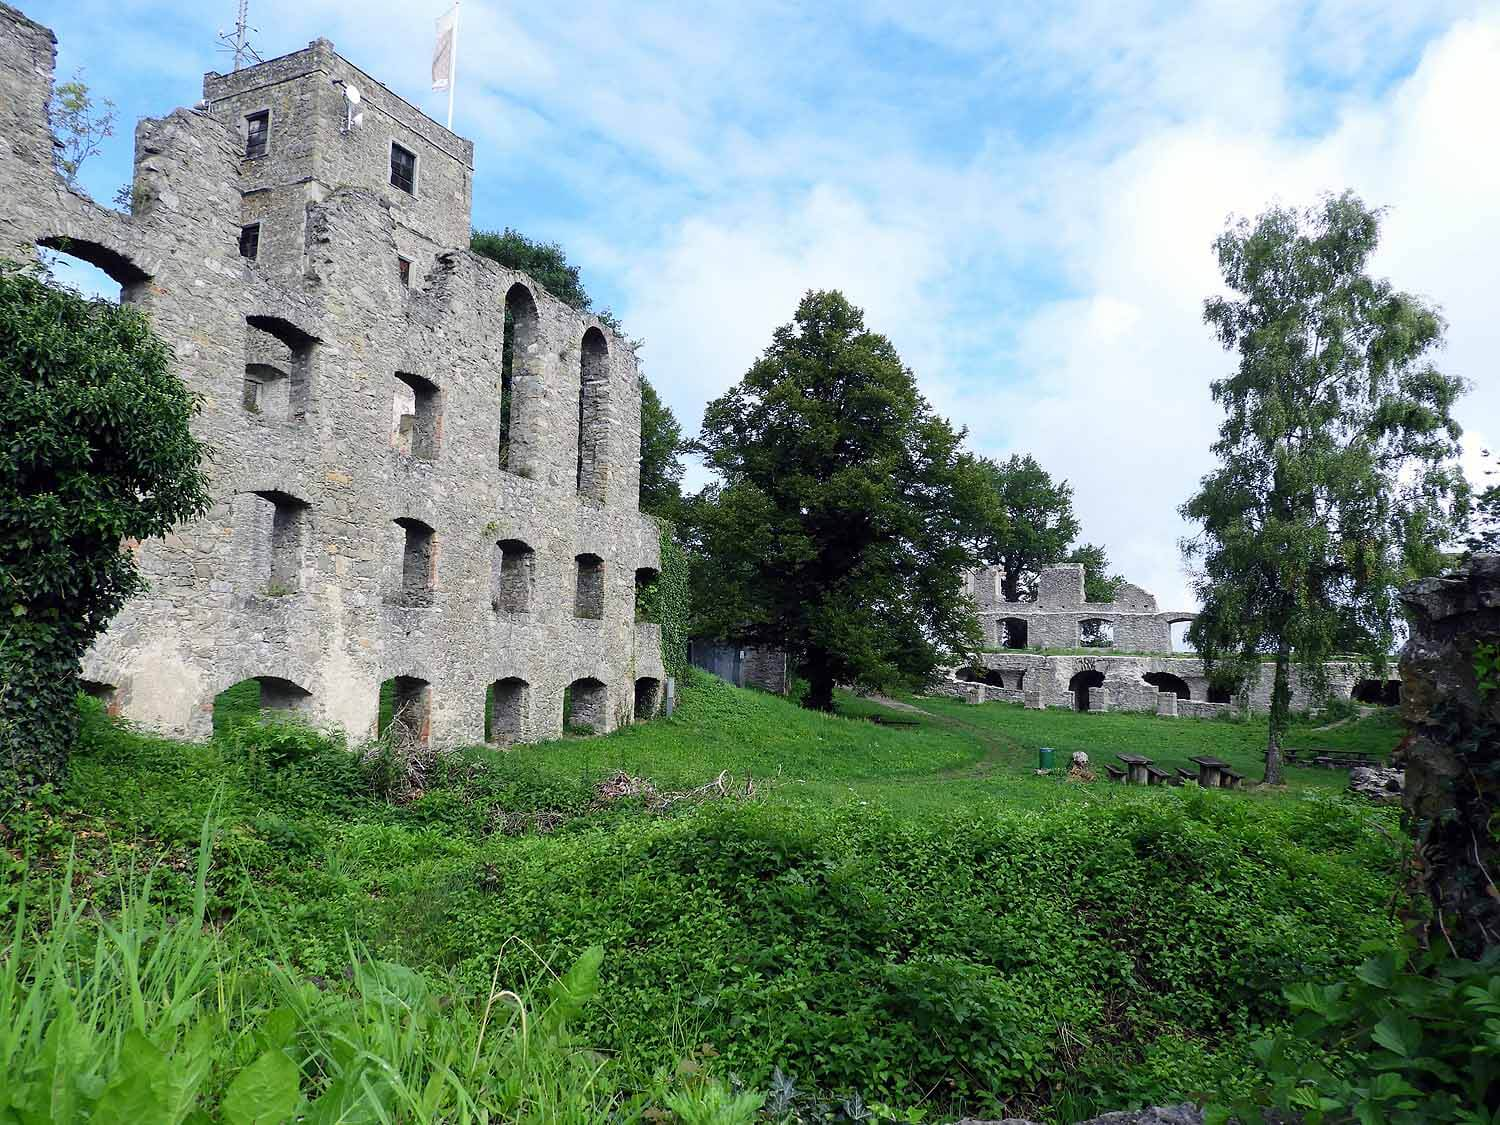 germany-hohentwiel-castle-ruins-historic-hilltop.jpg